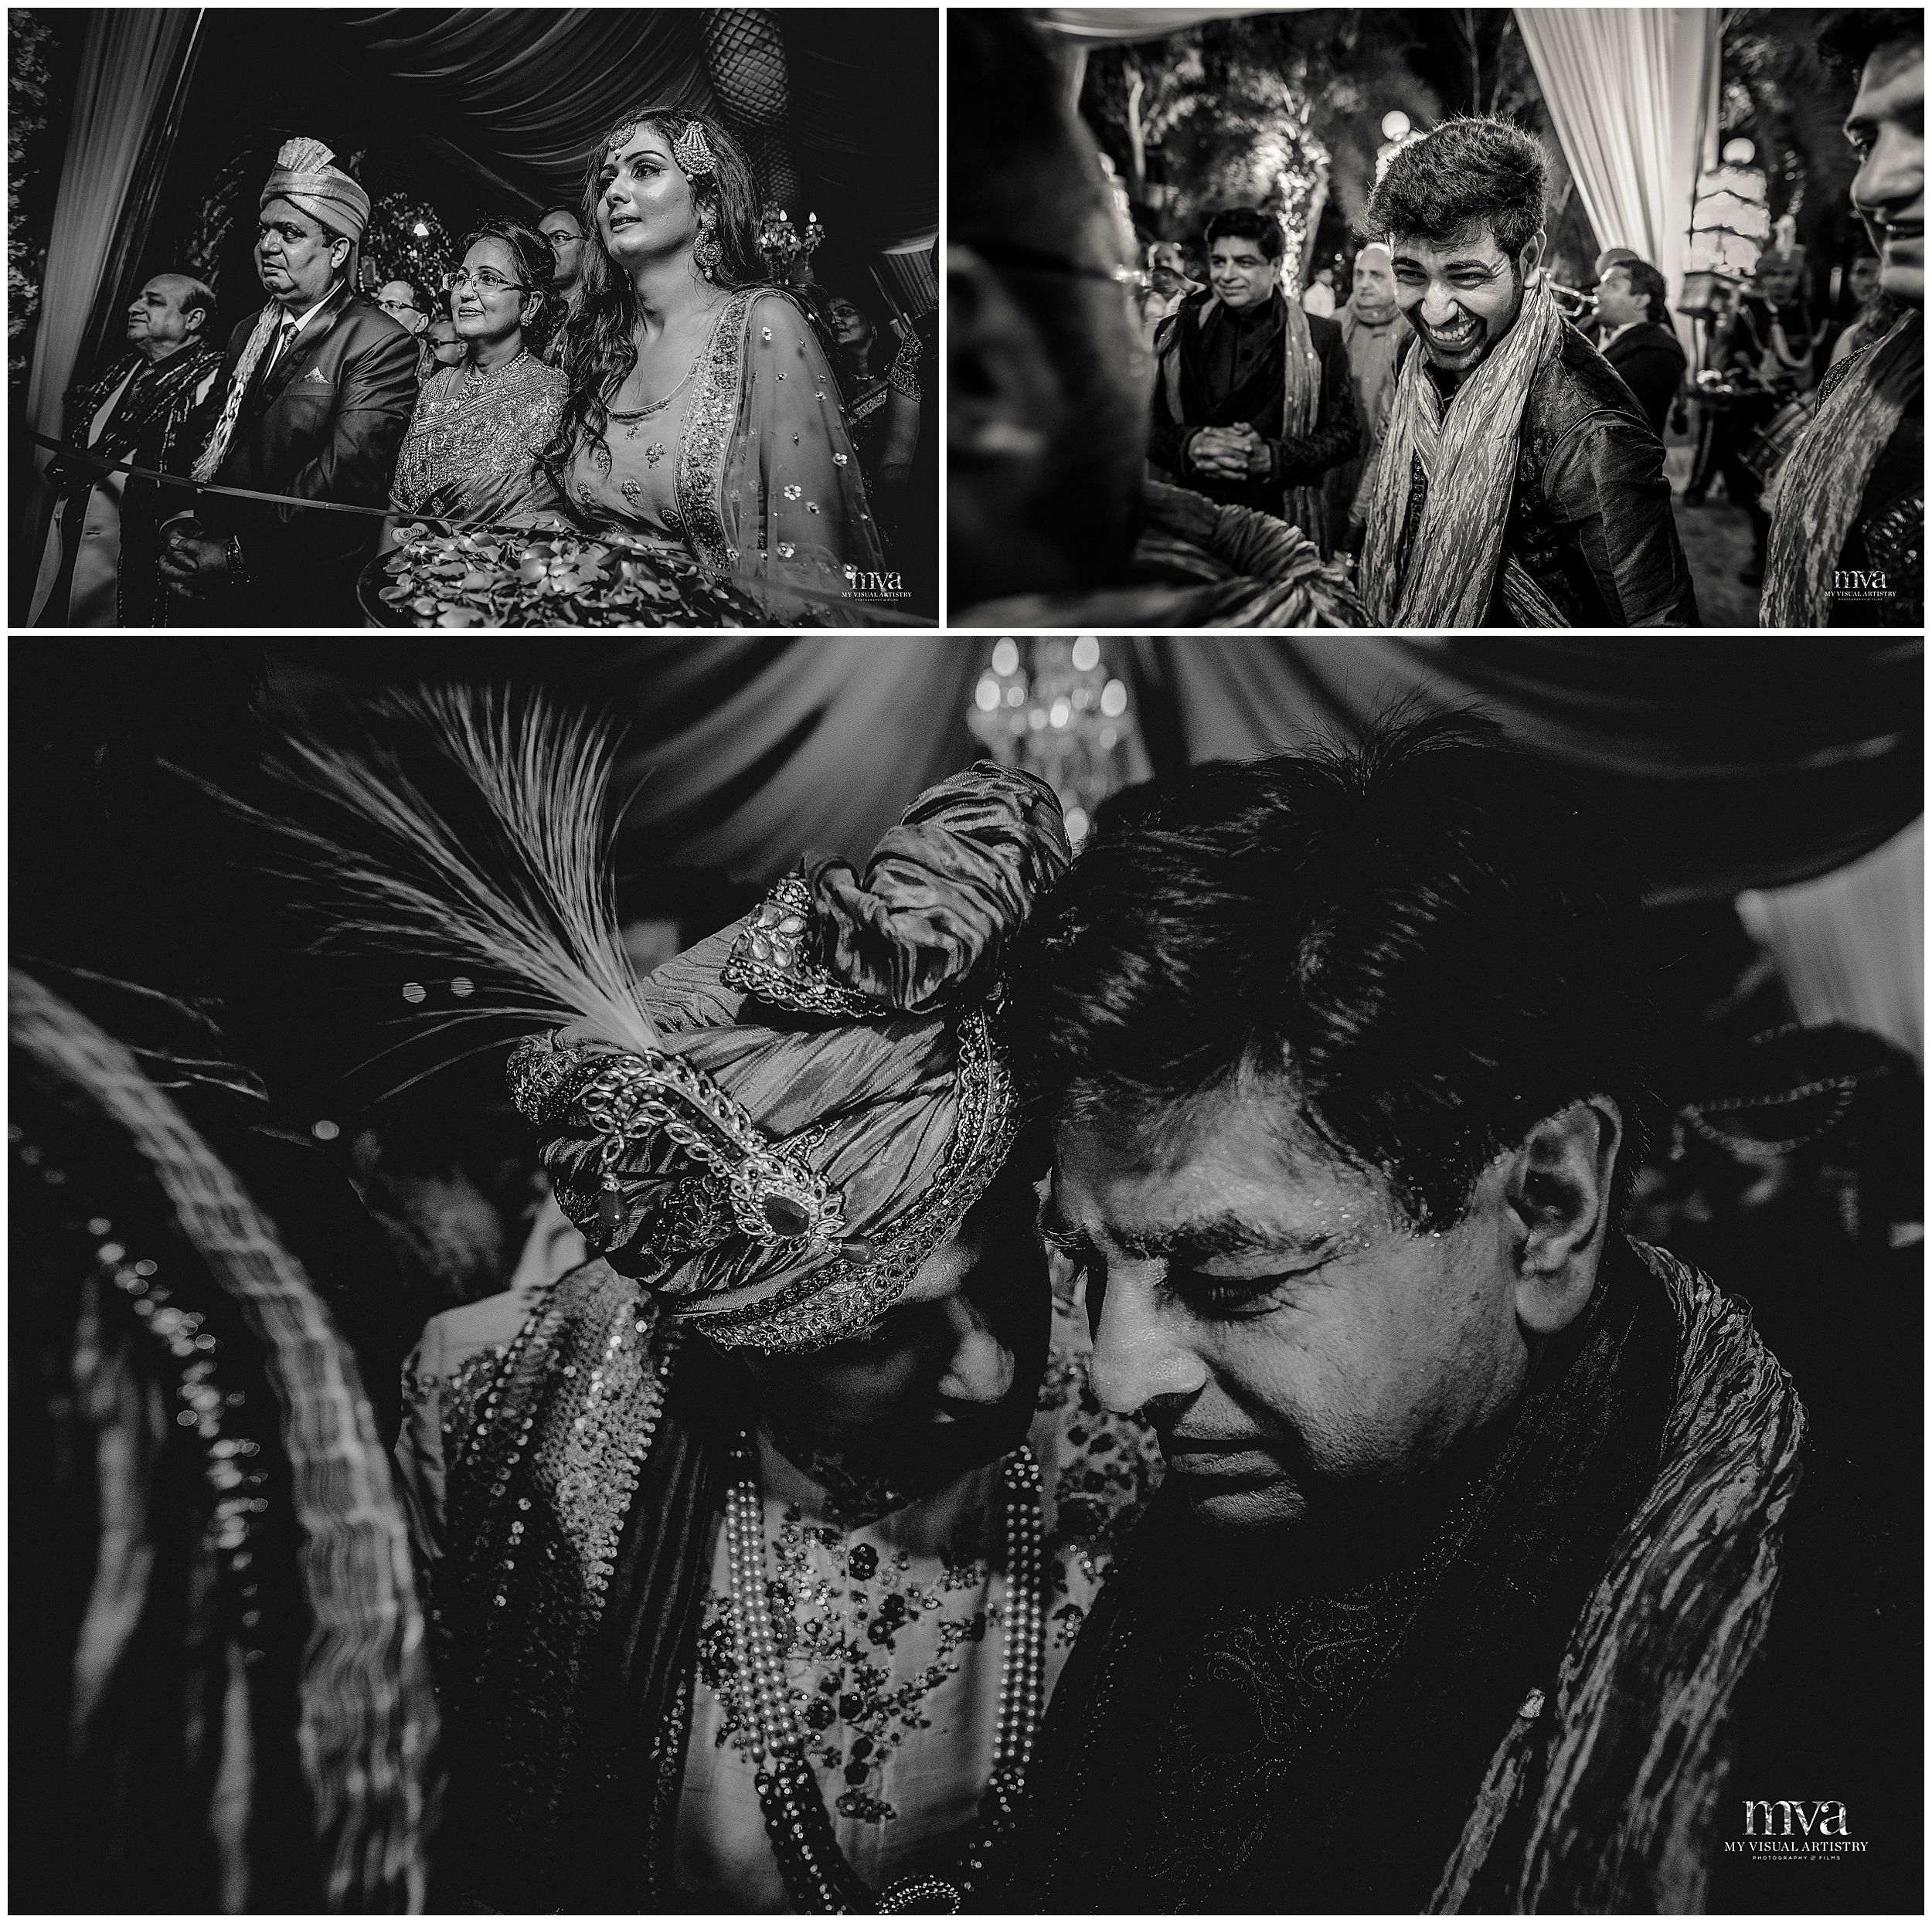 SIDDARTH_SAKSHI_MYVISUALARTISTRY_WEDDING_PHOTOGRAPHY_MVA_EROSHANGRILA_DELHI_0031.jpg